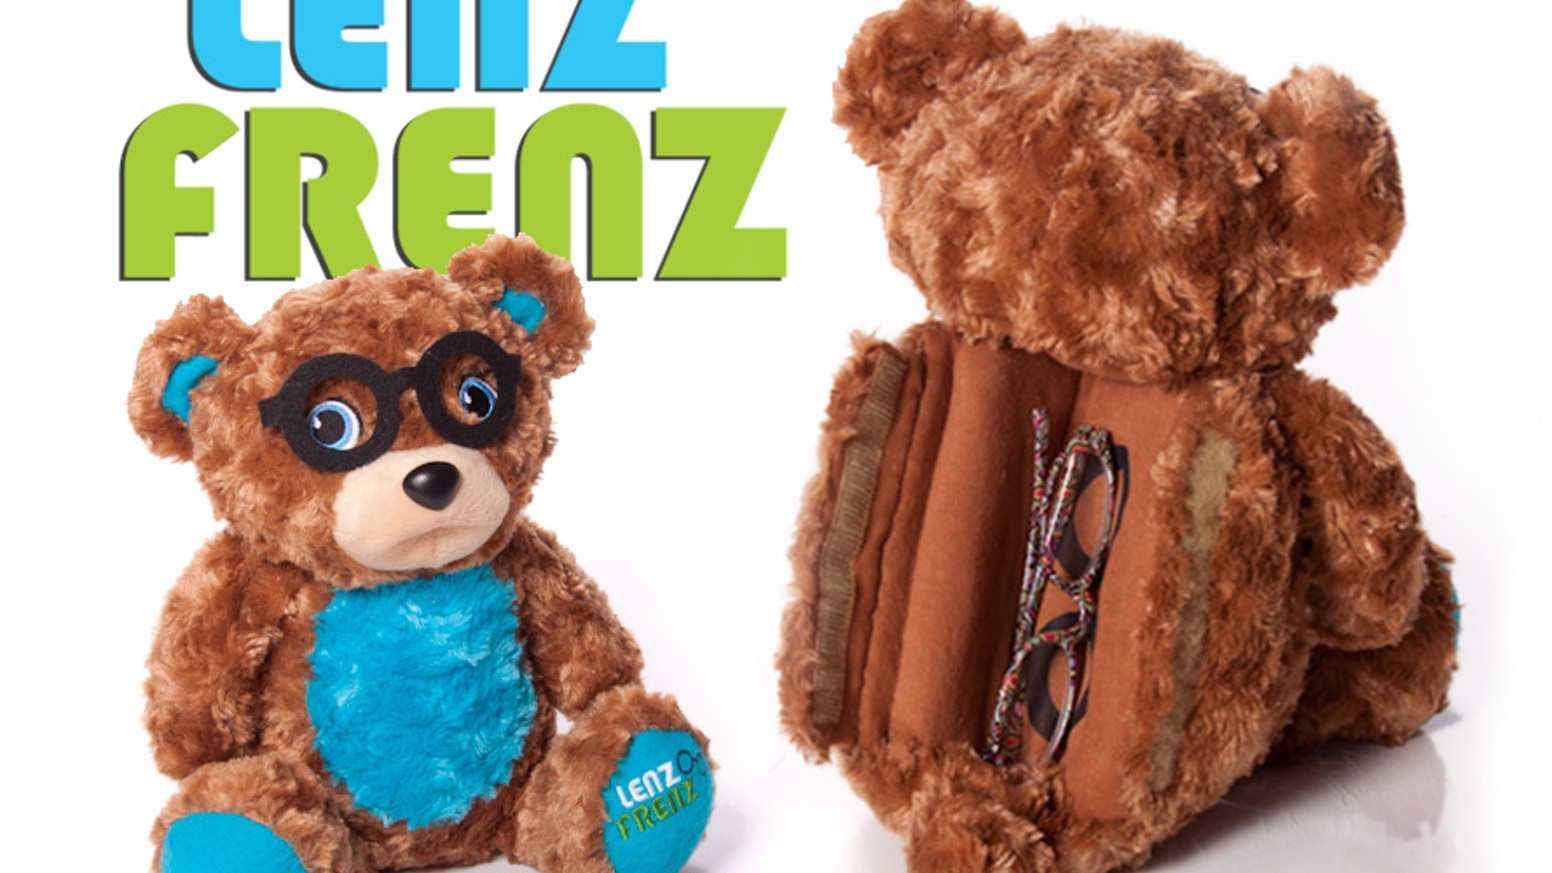 009526089f0 Lenz Frenz is a plush animal that securely stores and wears eyeglasses on  its face and inside its protective belly case.